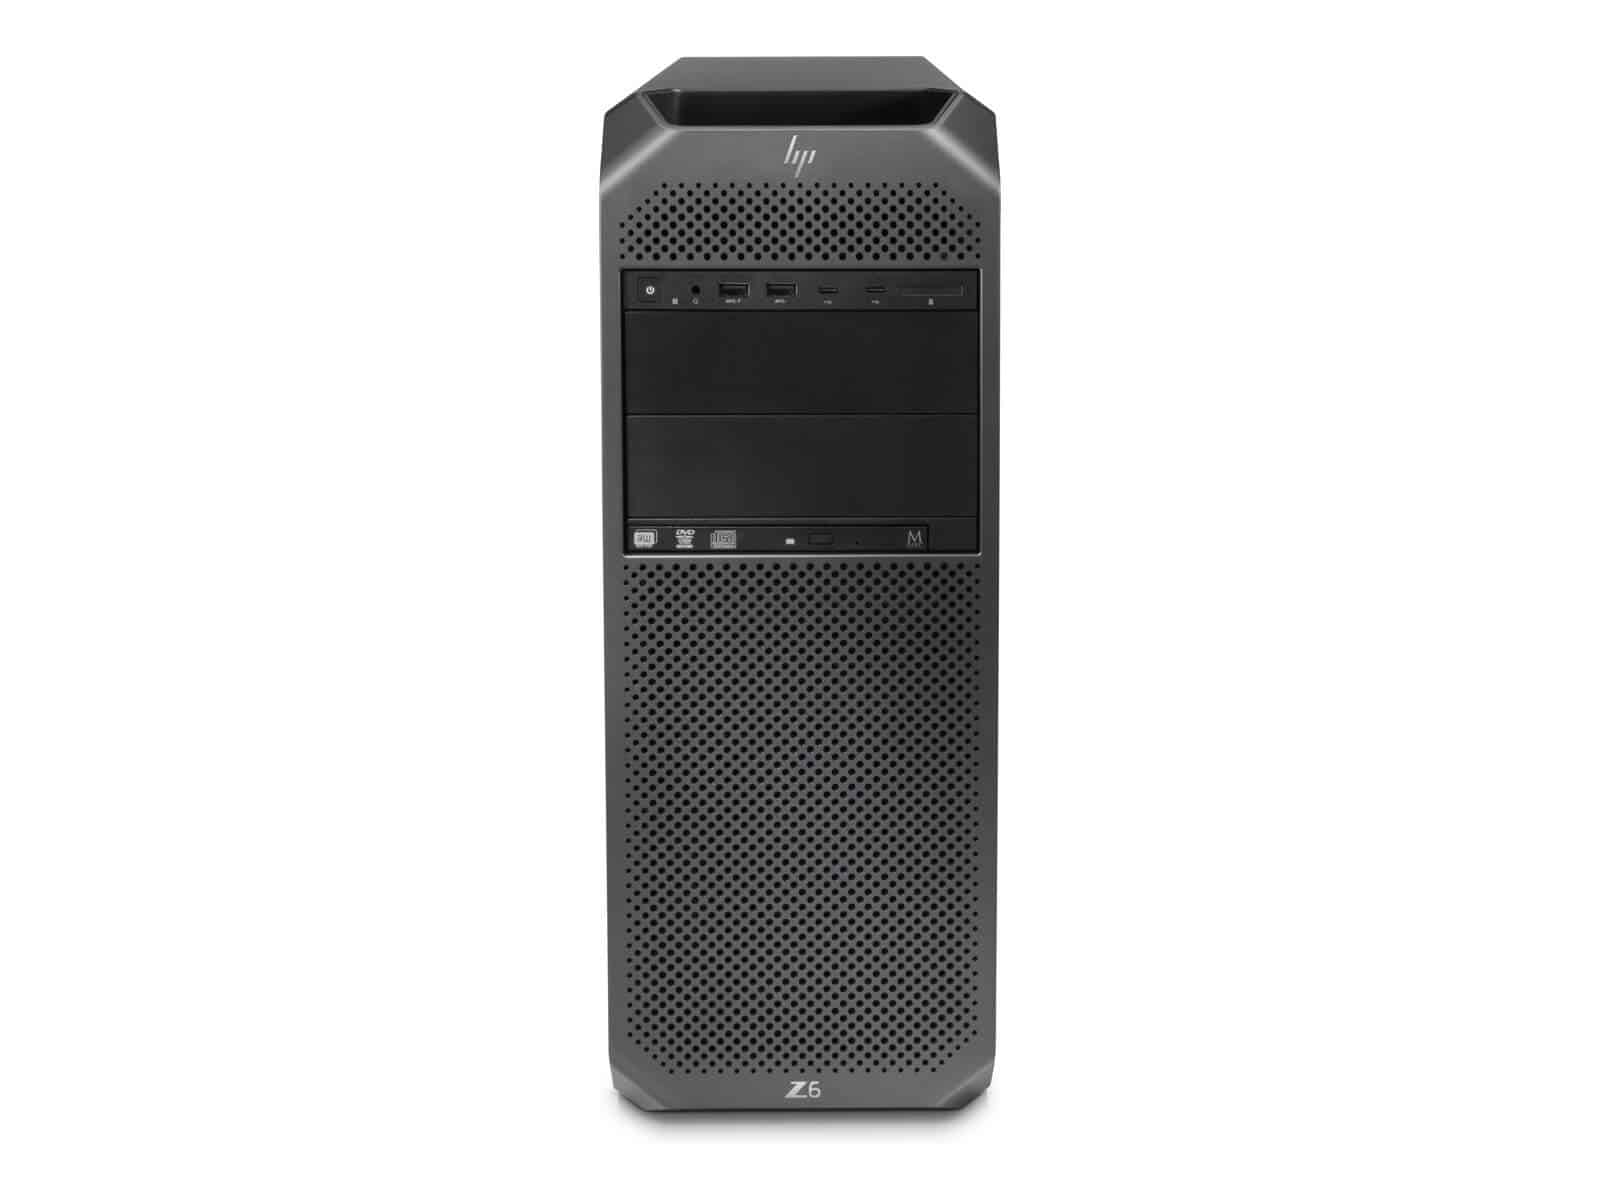 HP Z6 G4 Mini Intel® Xeon® 4108 32 GB DDR4 Workstation